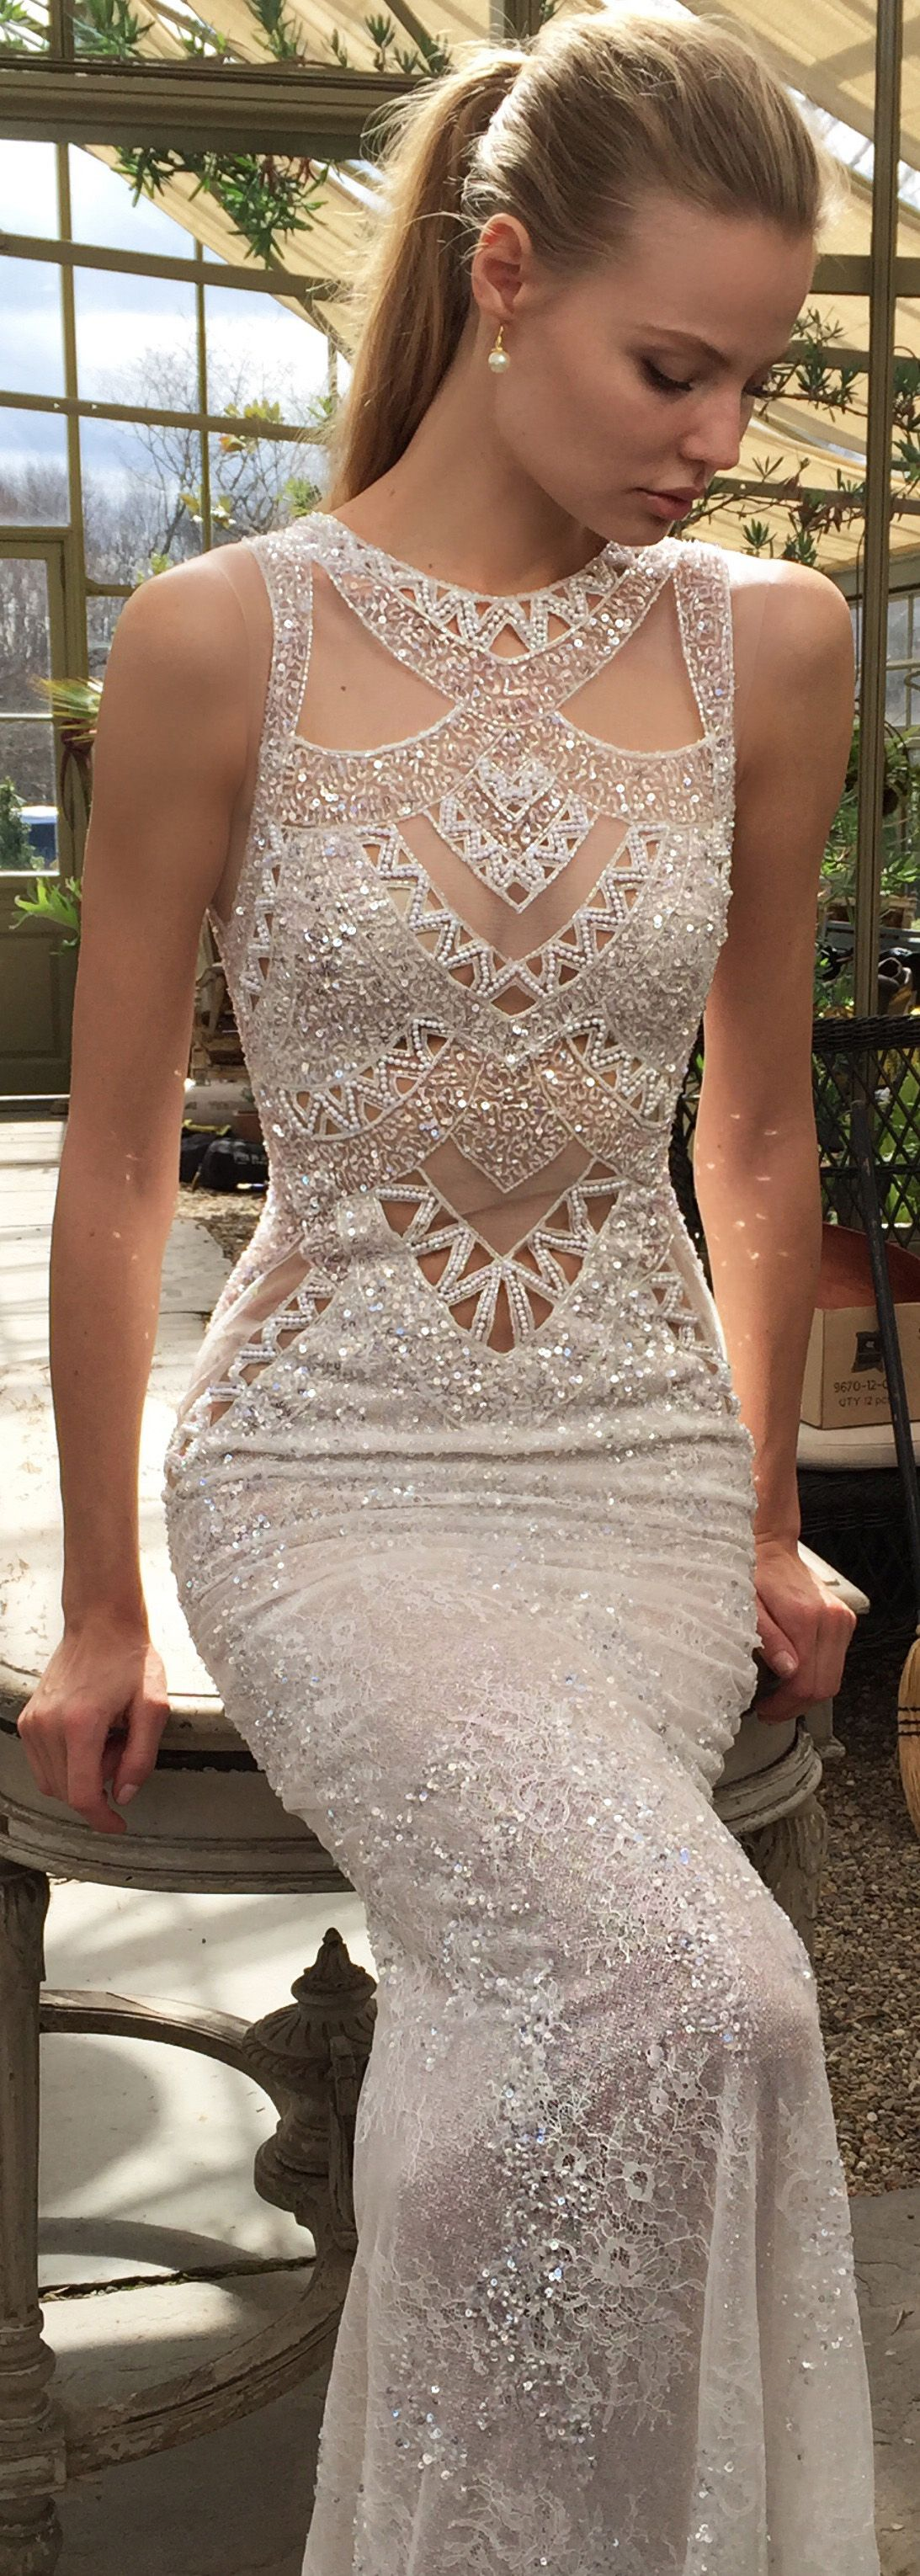 The geometric detailing on this bertabridal wedding dress gives it